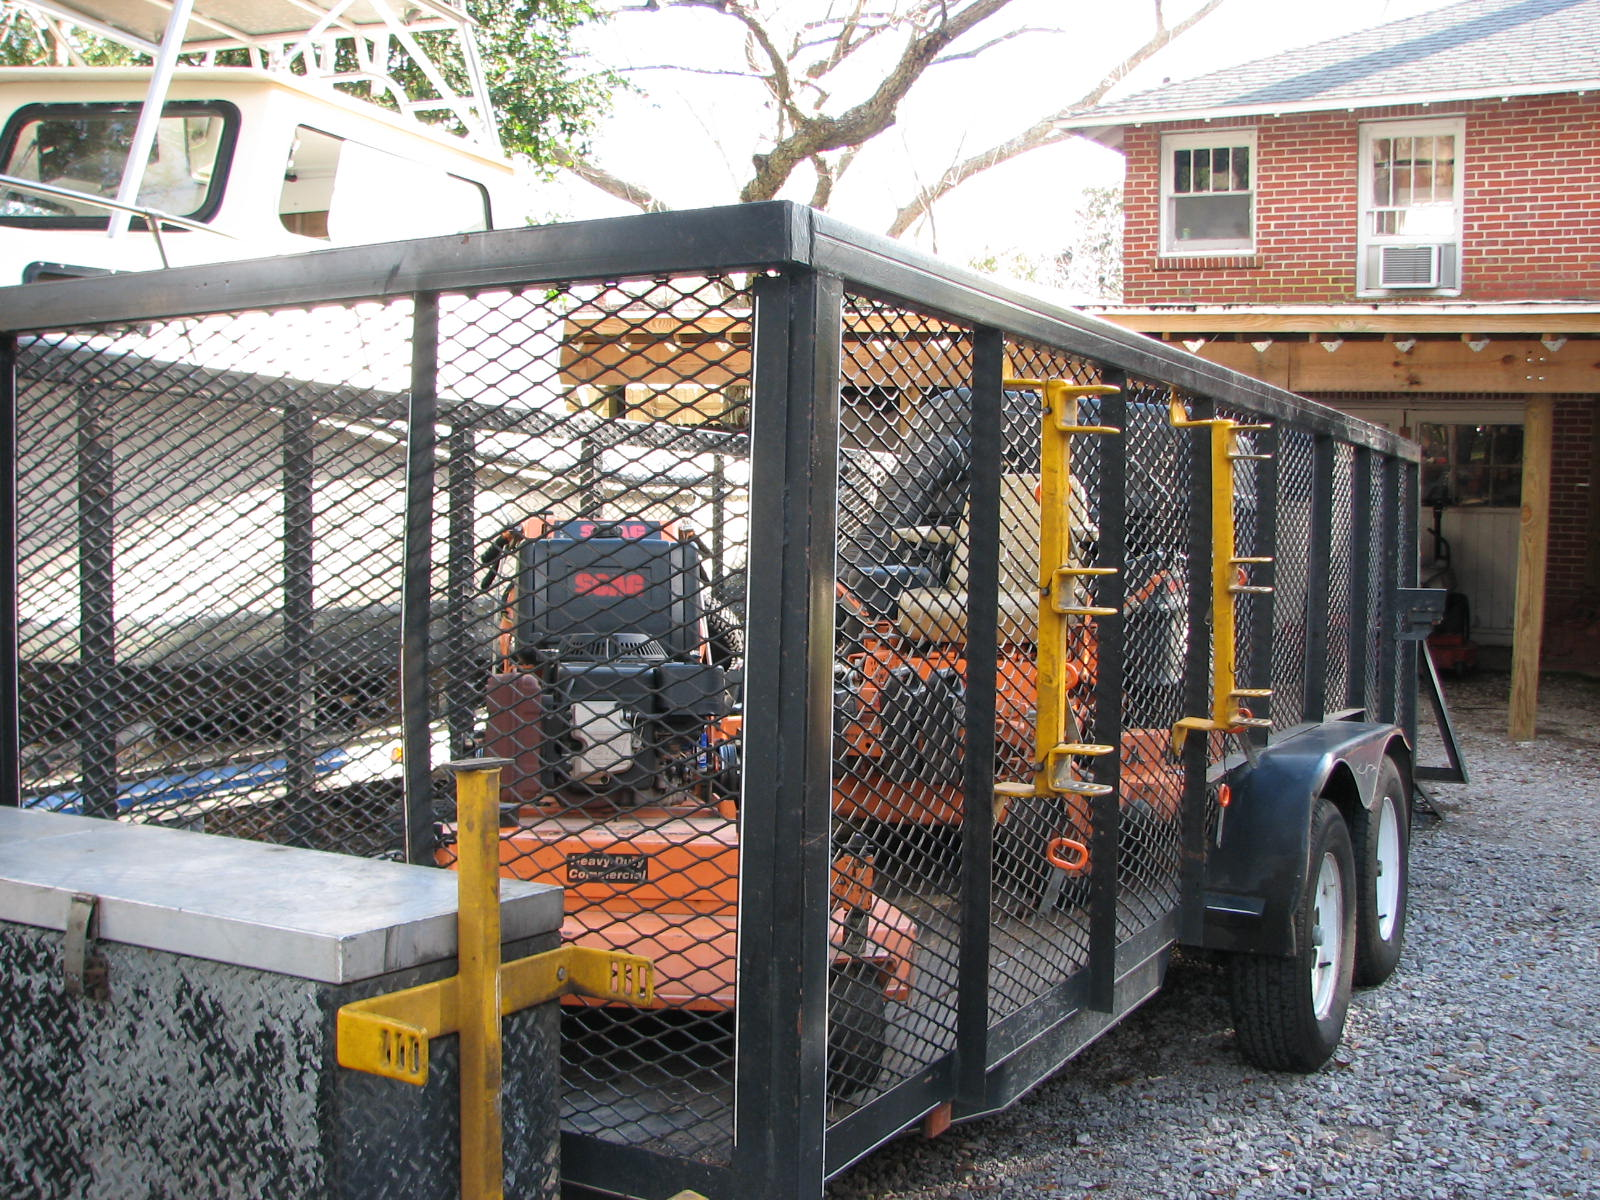 Lawn trailer and lawn mowing trailers for your service business.